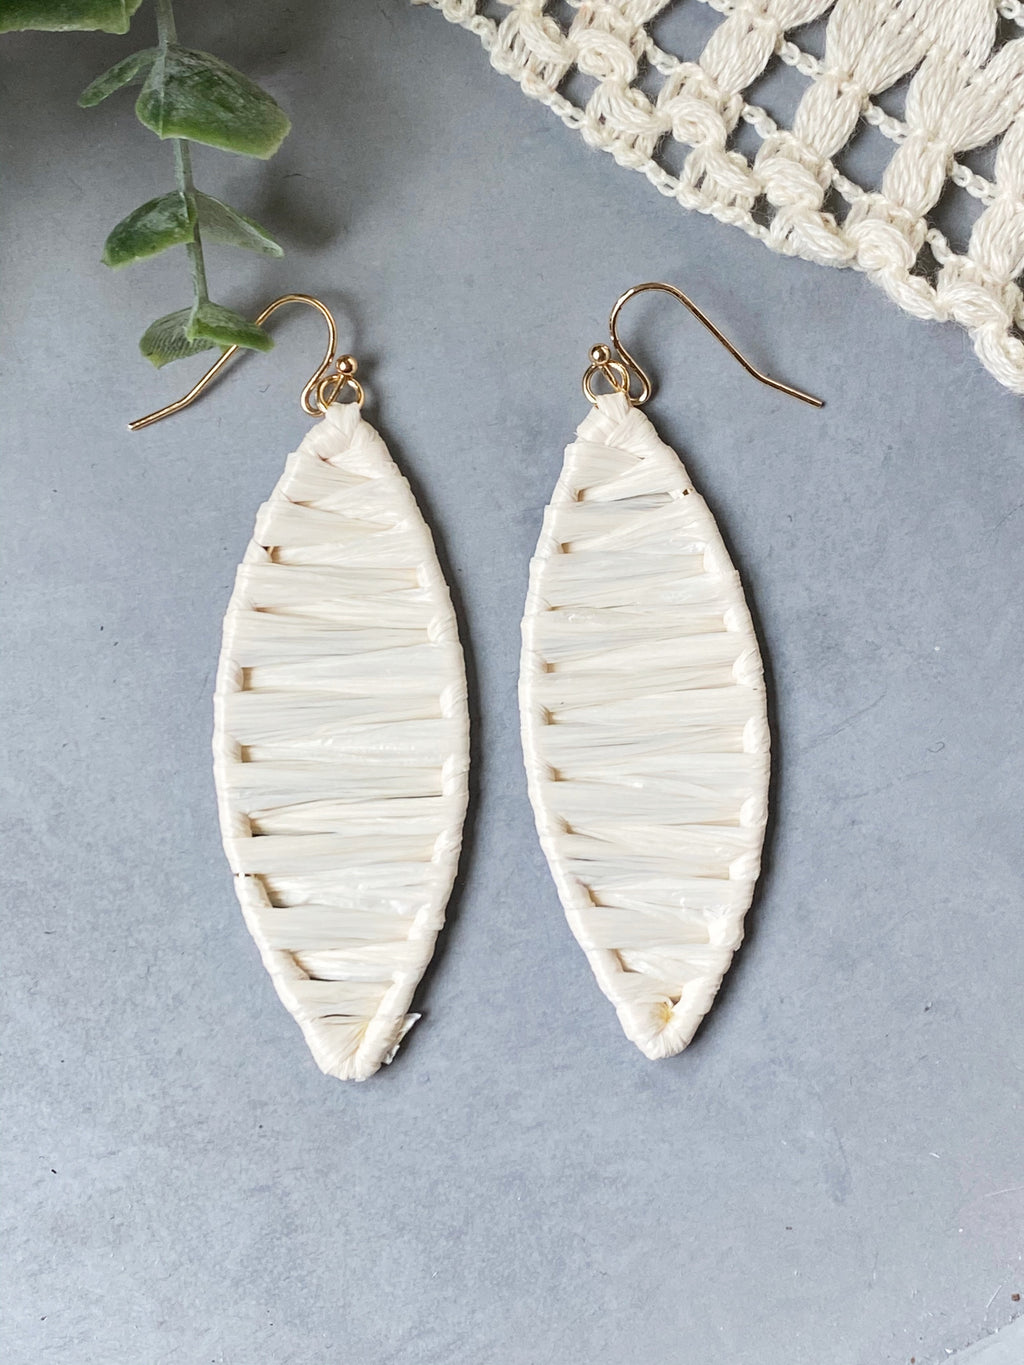 Lindsay Cream Earrings